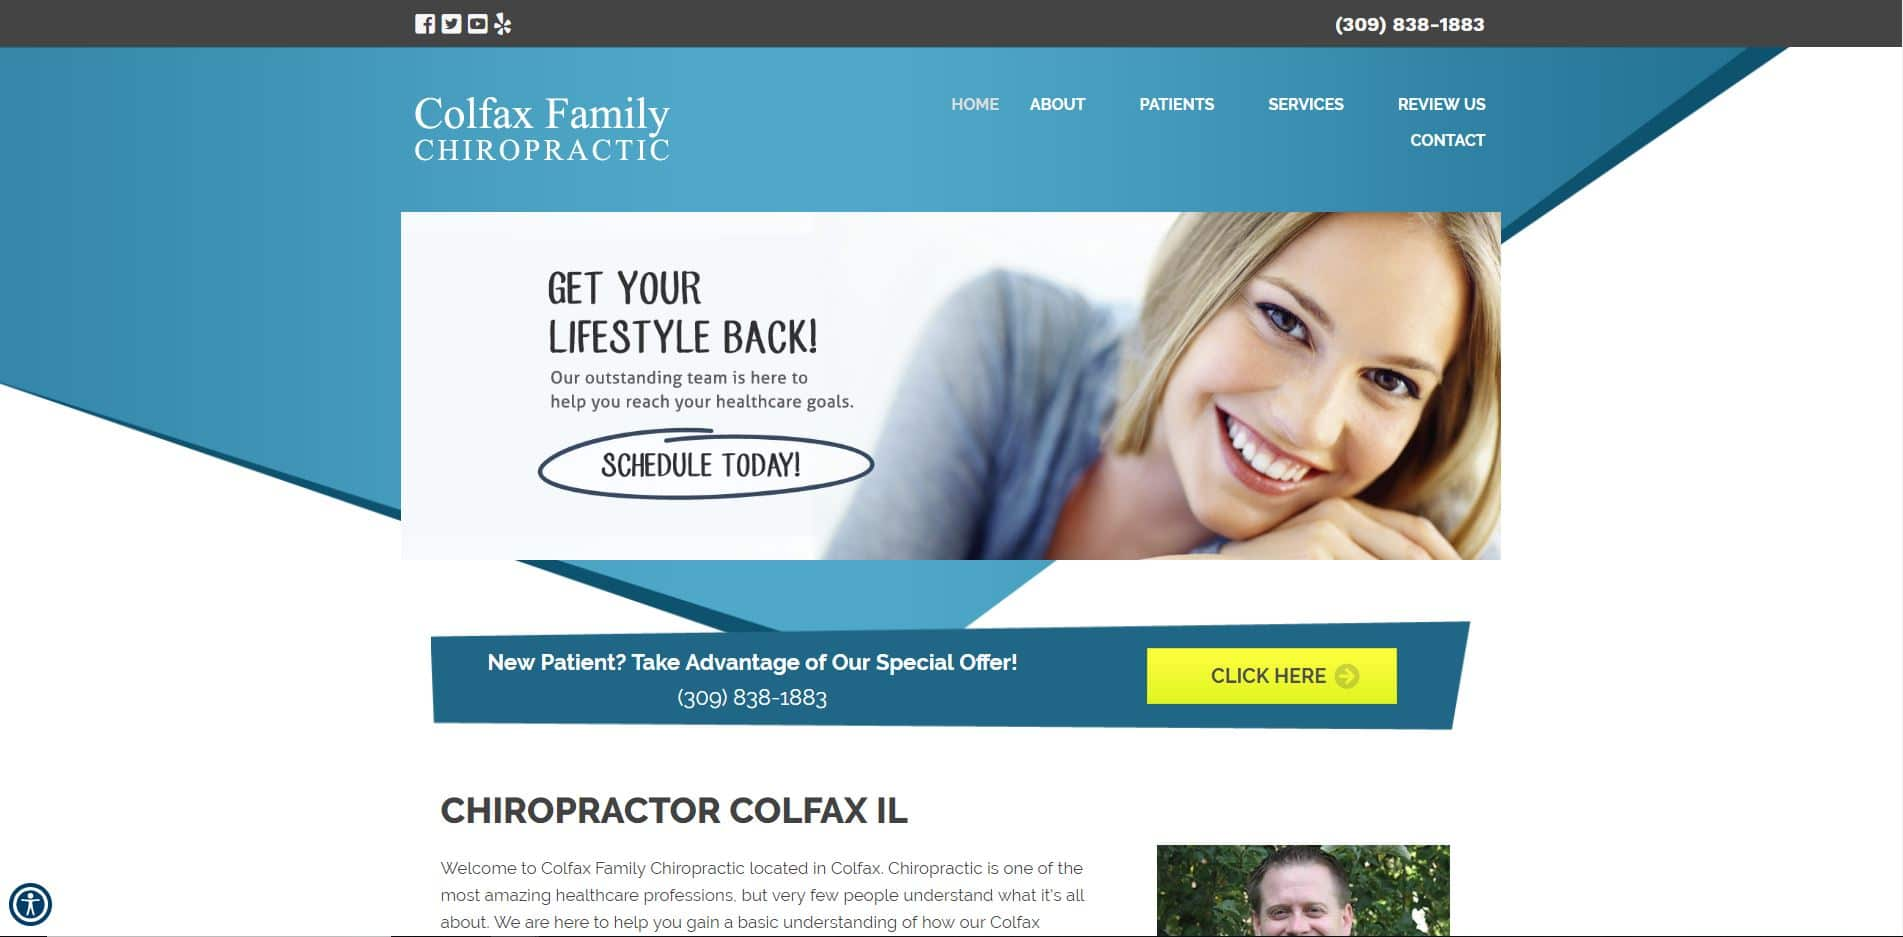 Chiropractor in Colfax